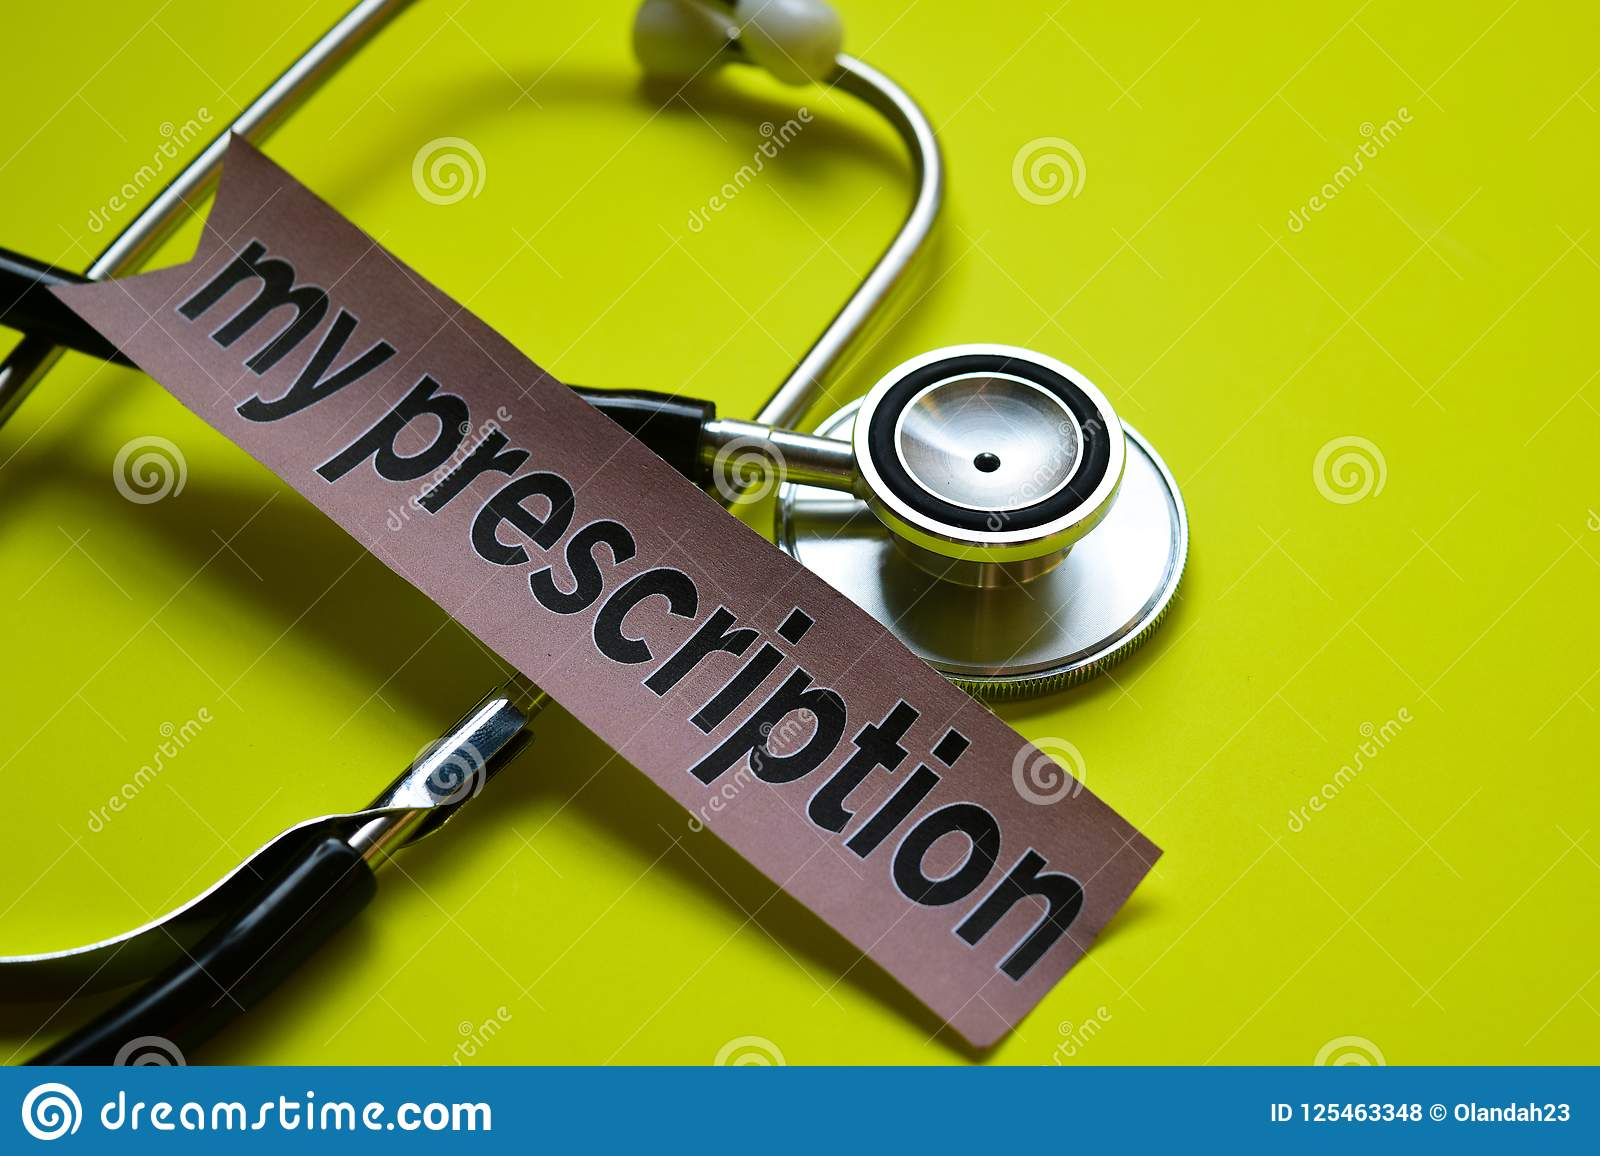 Closeup my prescription with stethoscope concept inspiration on yellow background